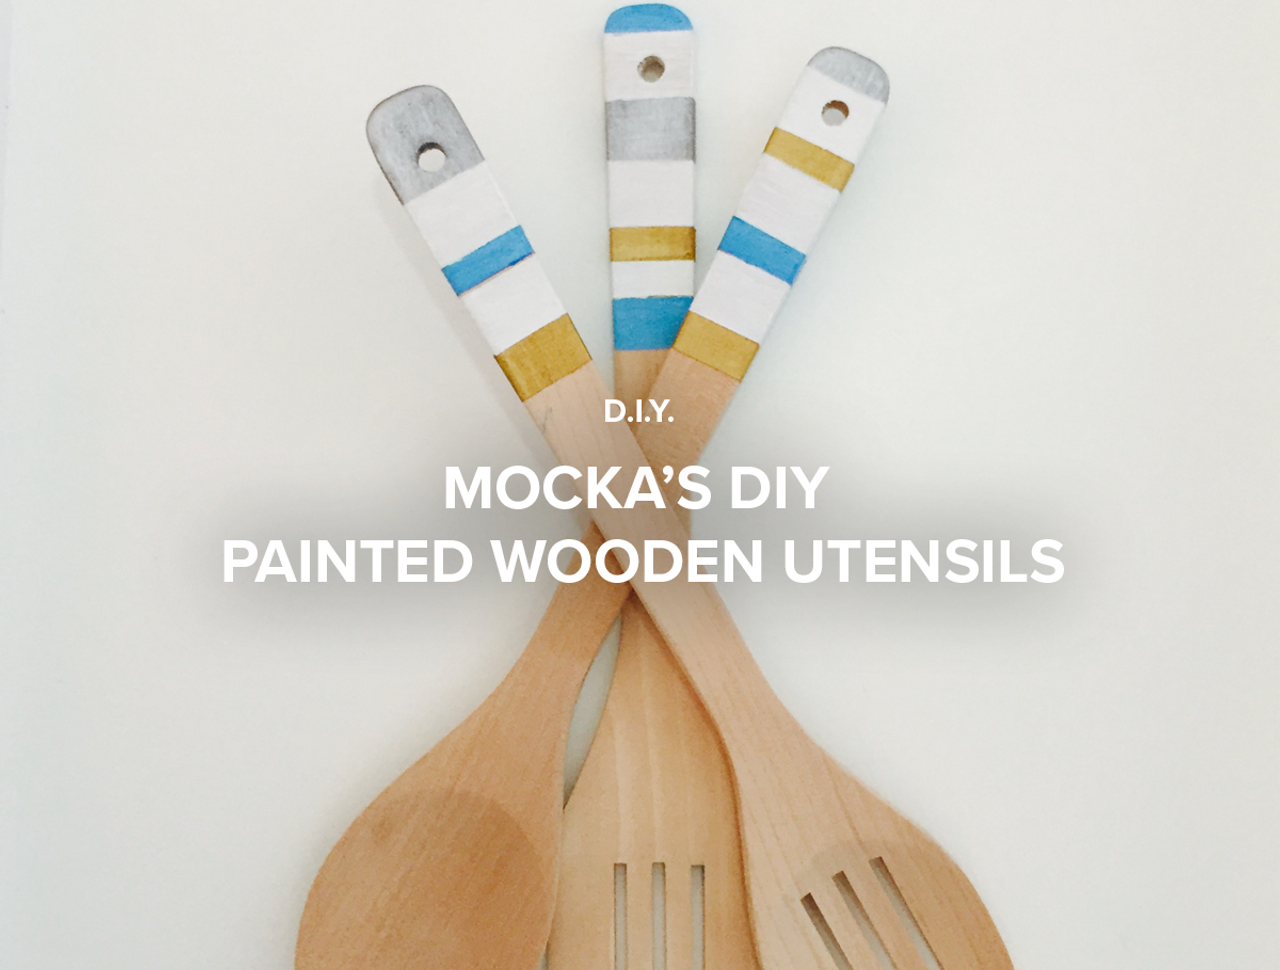 Mocka's DIY Painted Wooden Utensils